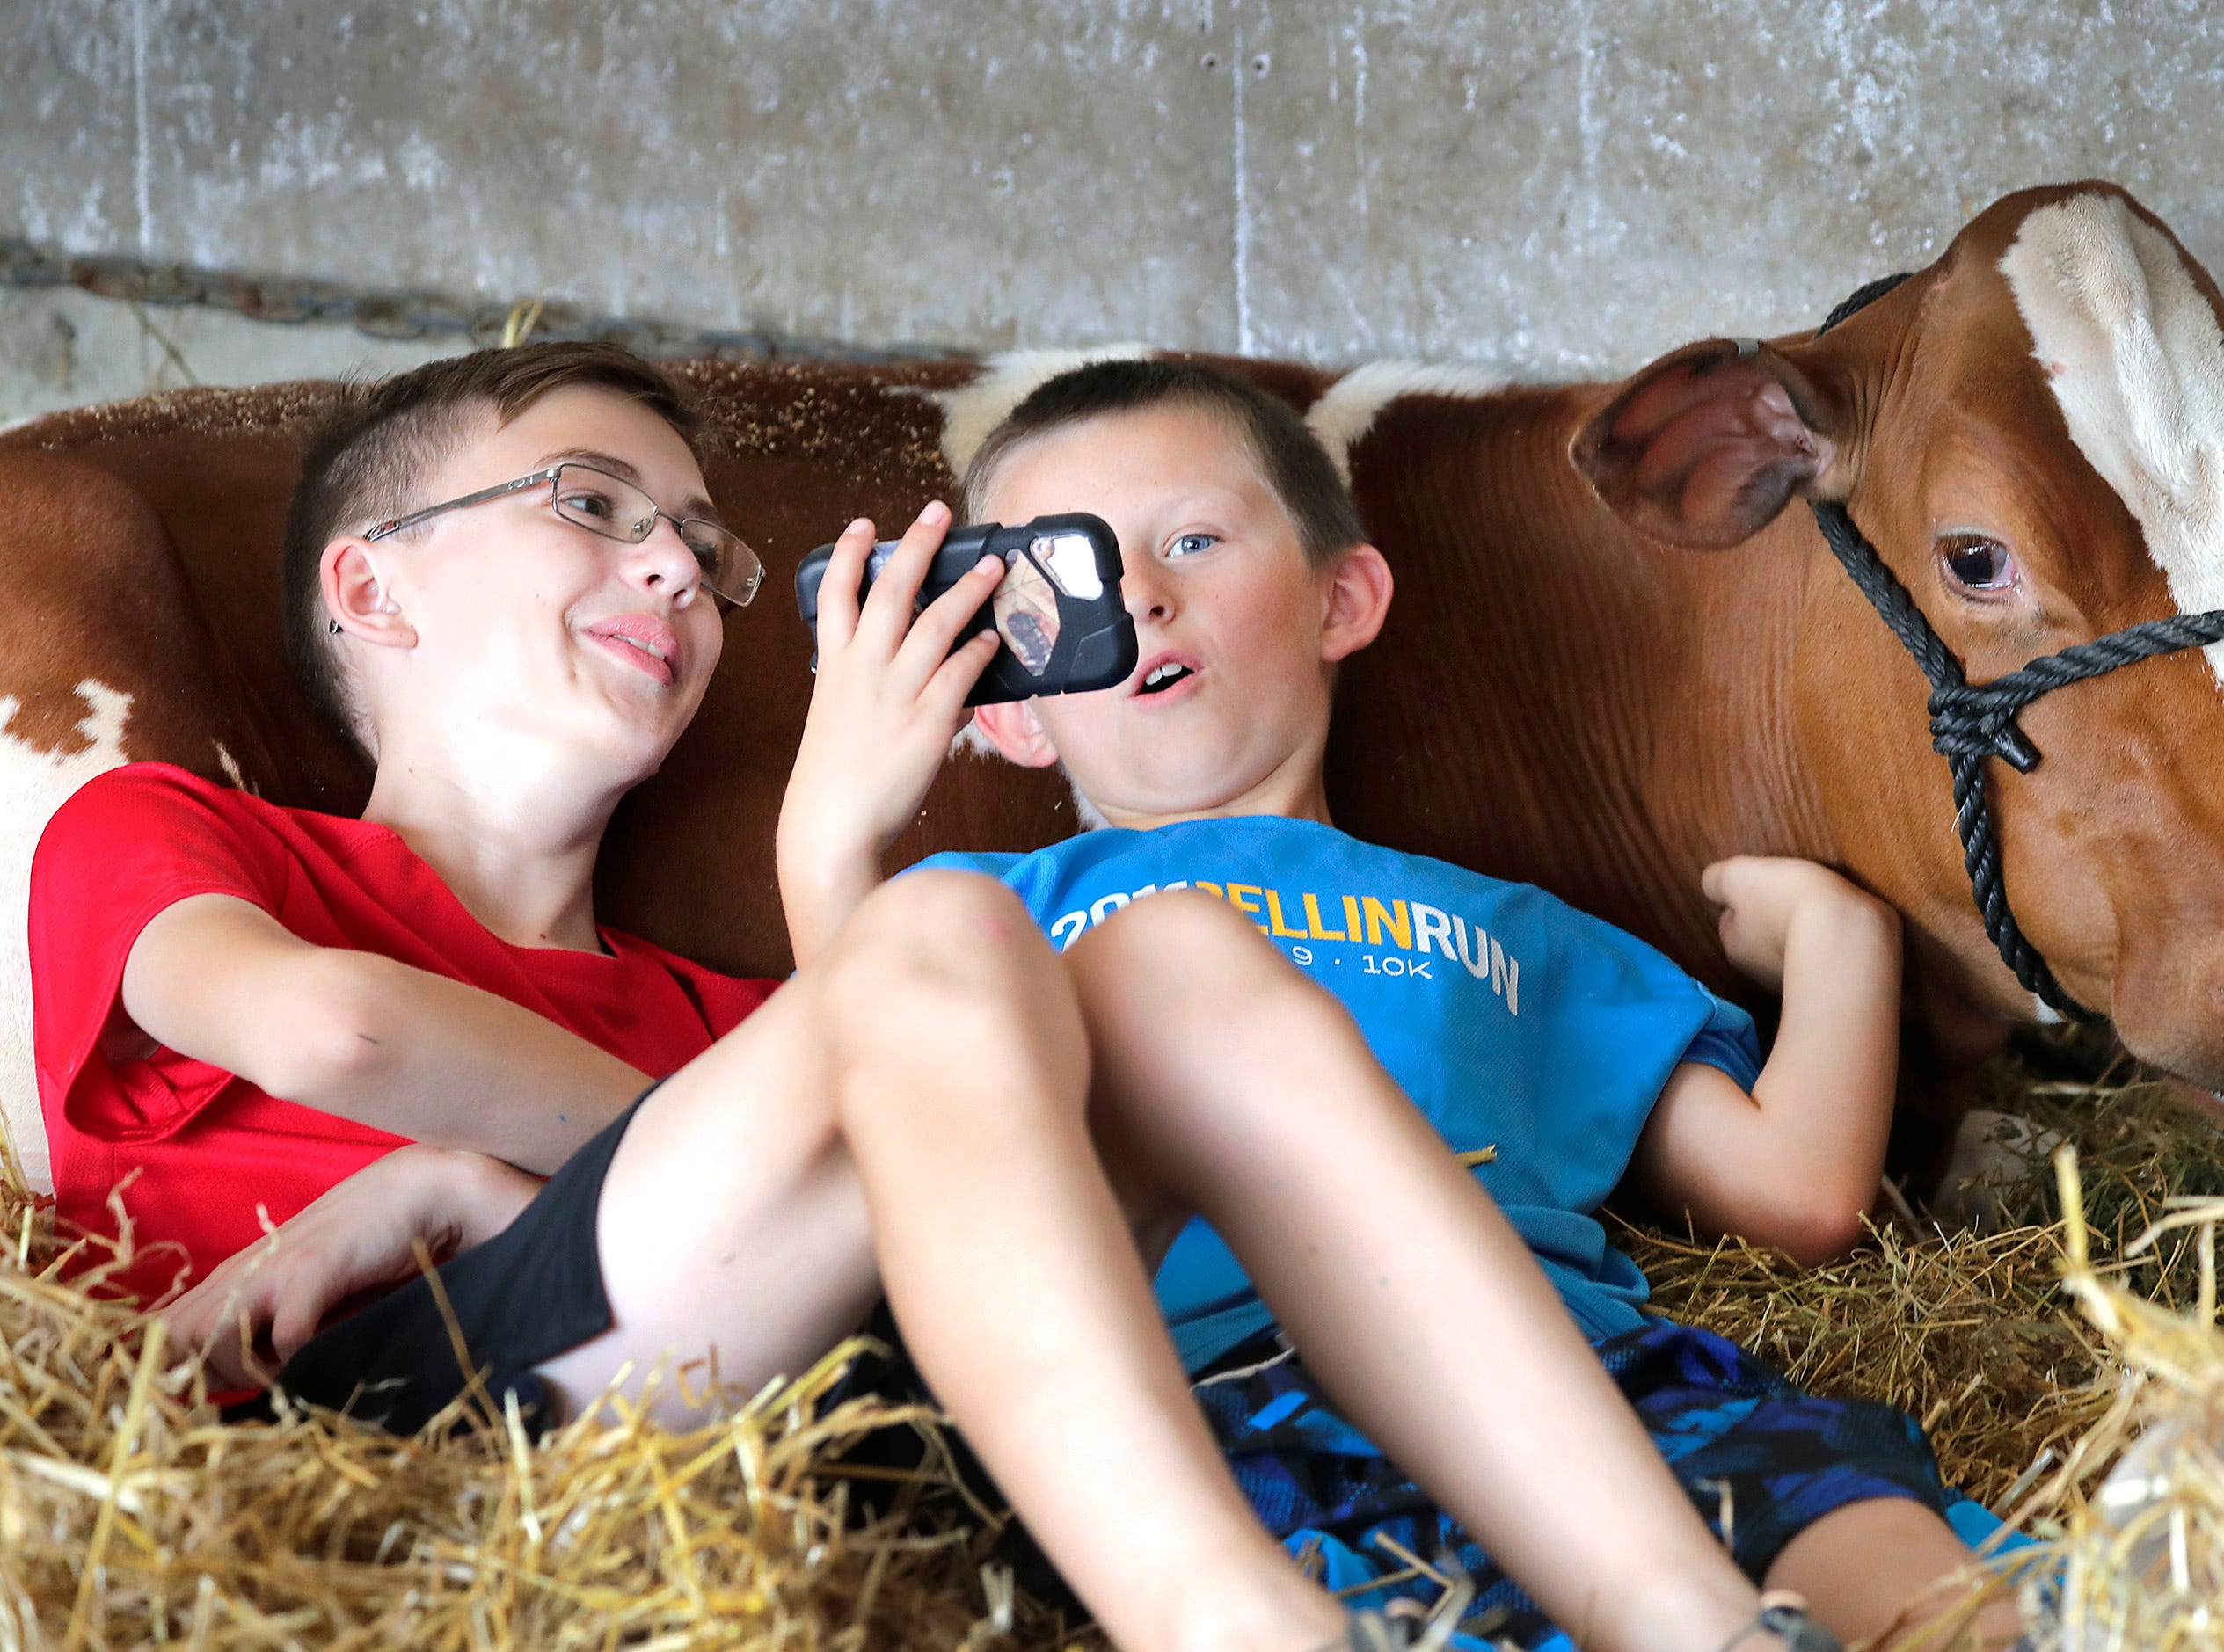 Adam Karweick, on left from Seymour, and Kody Banker, Black Creek, watch videos while relaxing during the Outagamie County Fair on Wednesday, July 25, 2018 in Seymour, Wis. Wm. Glasheen/USA TODAY NETWORK-Wisconsin